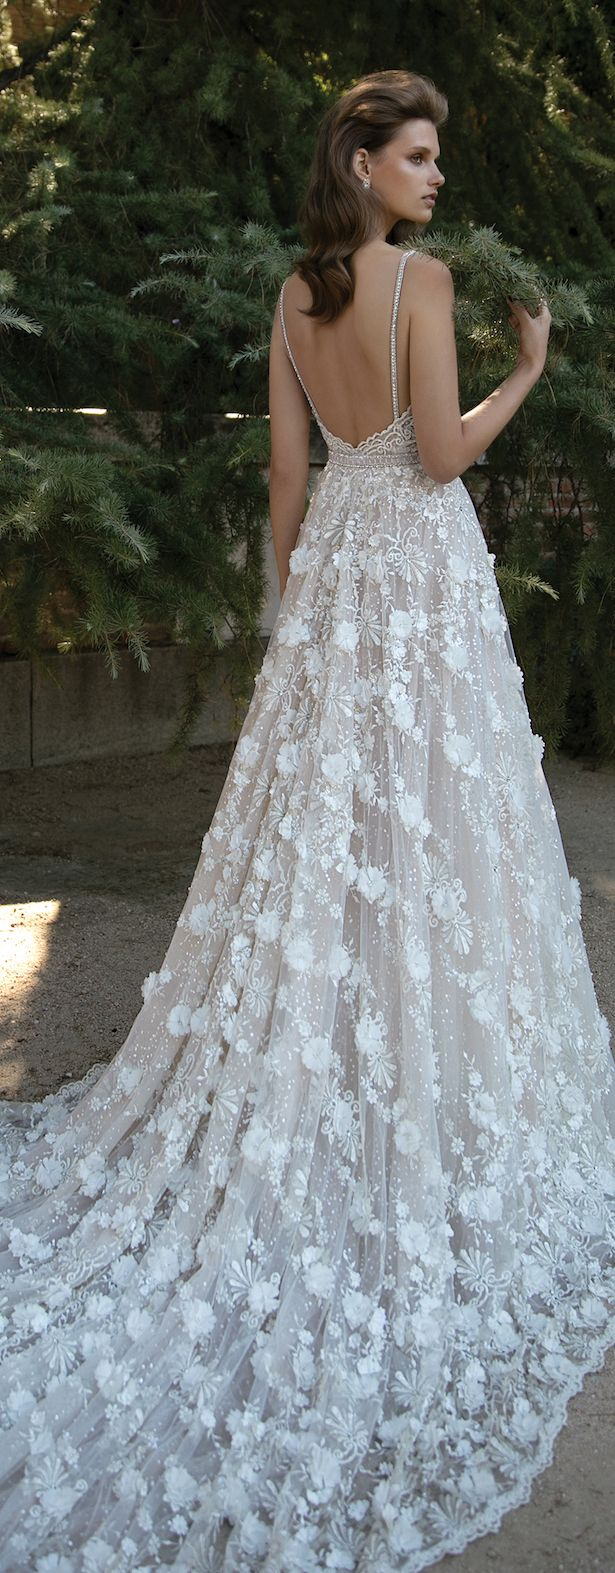 29 best Wedding gown images on Pinterest | Groom attire, Wedding ...